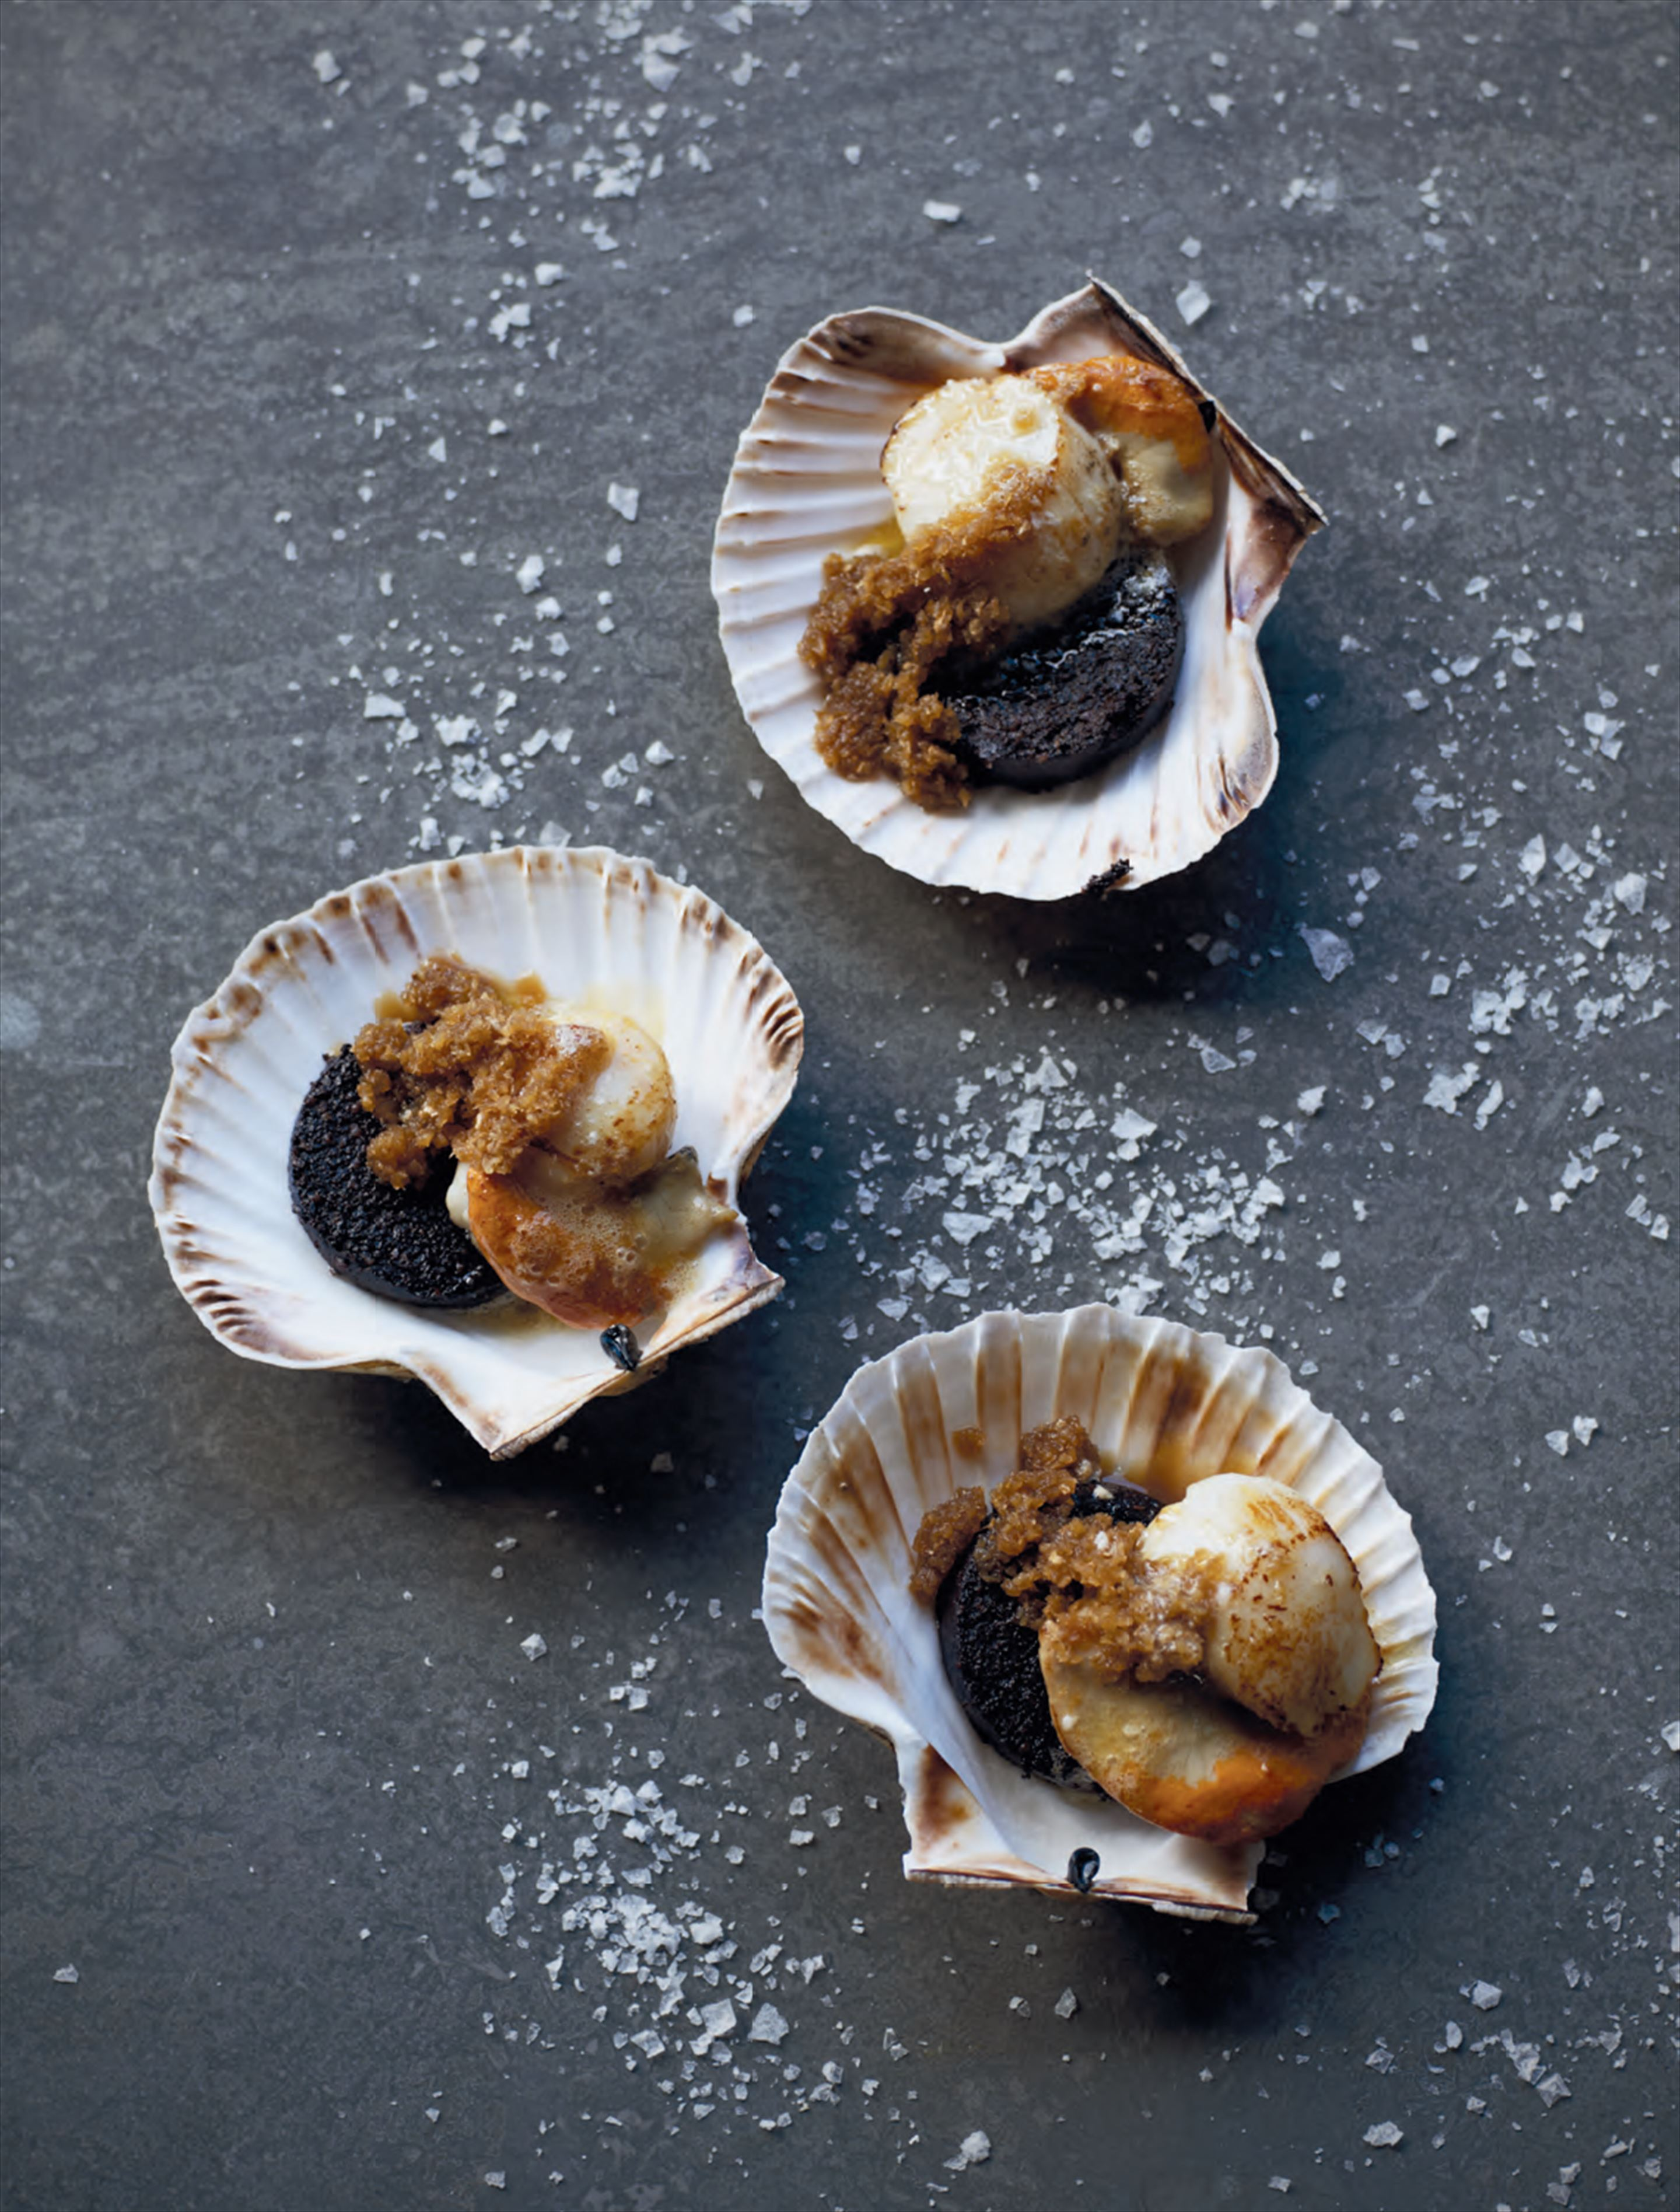 Pan-fried scallops with black pudding & ginger apple purée